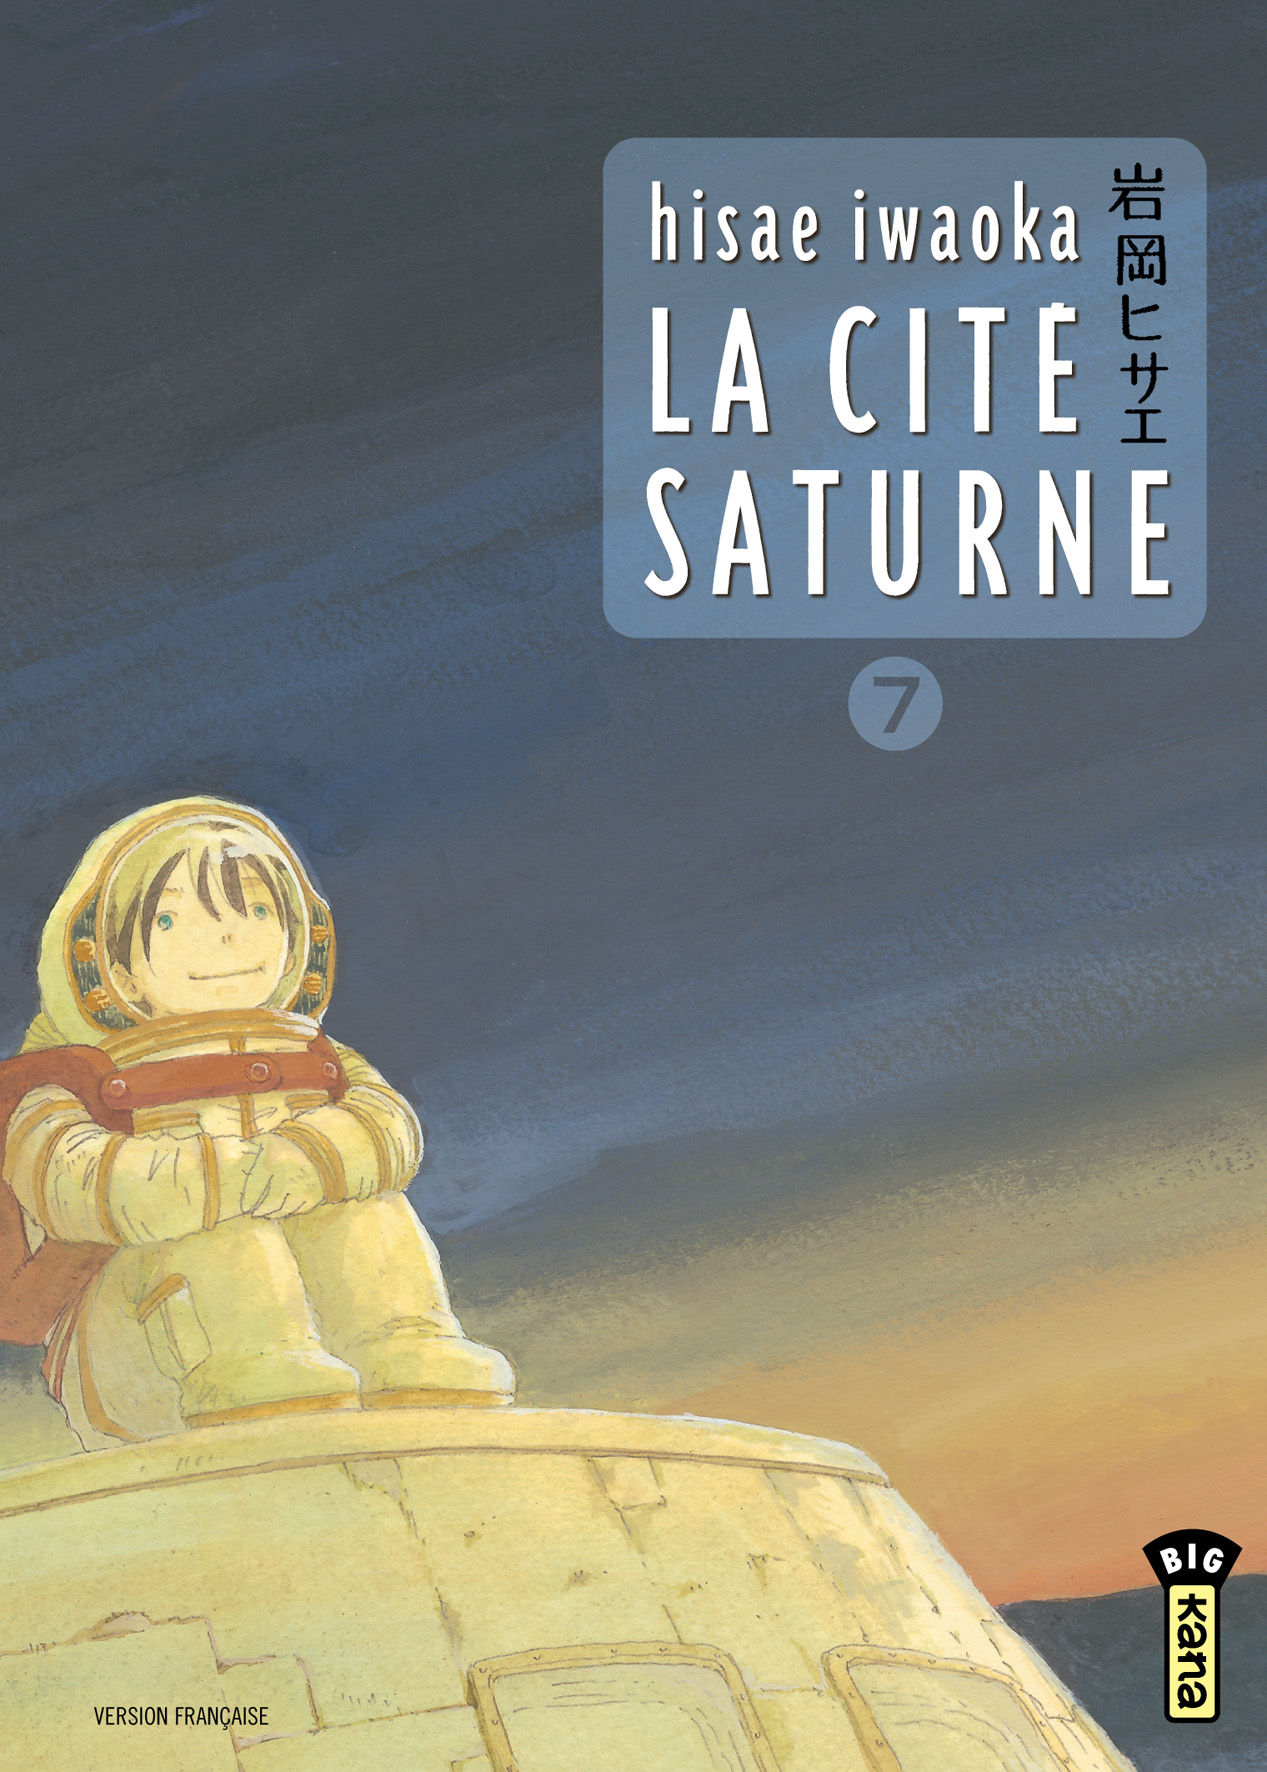 http://img.manga-sanctuary.com/big/la-cite-saturne-manga-volume-7-simple-54167.jpg